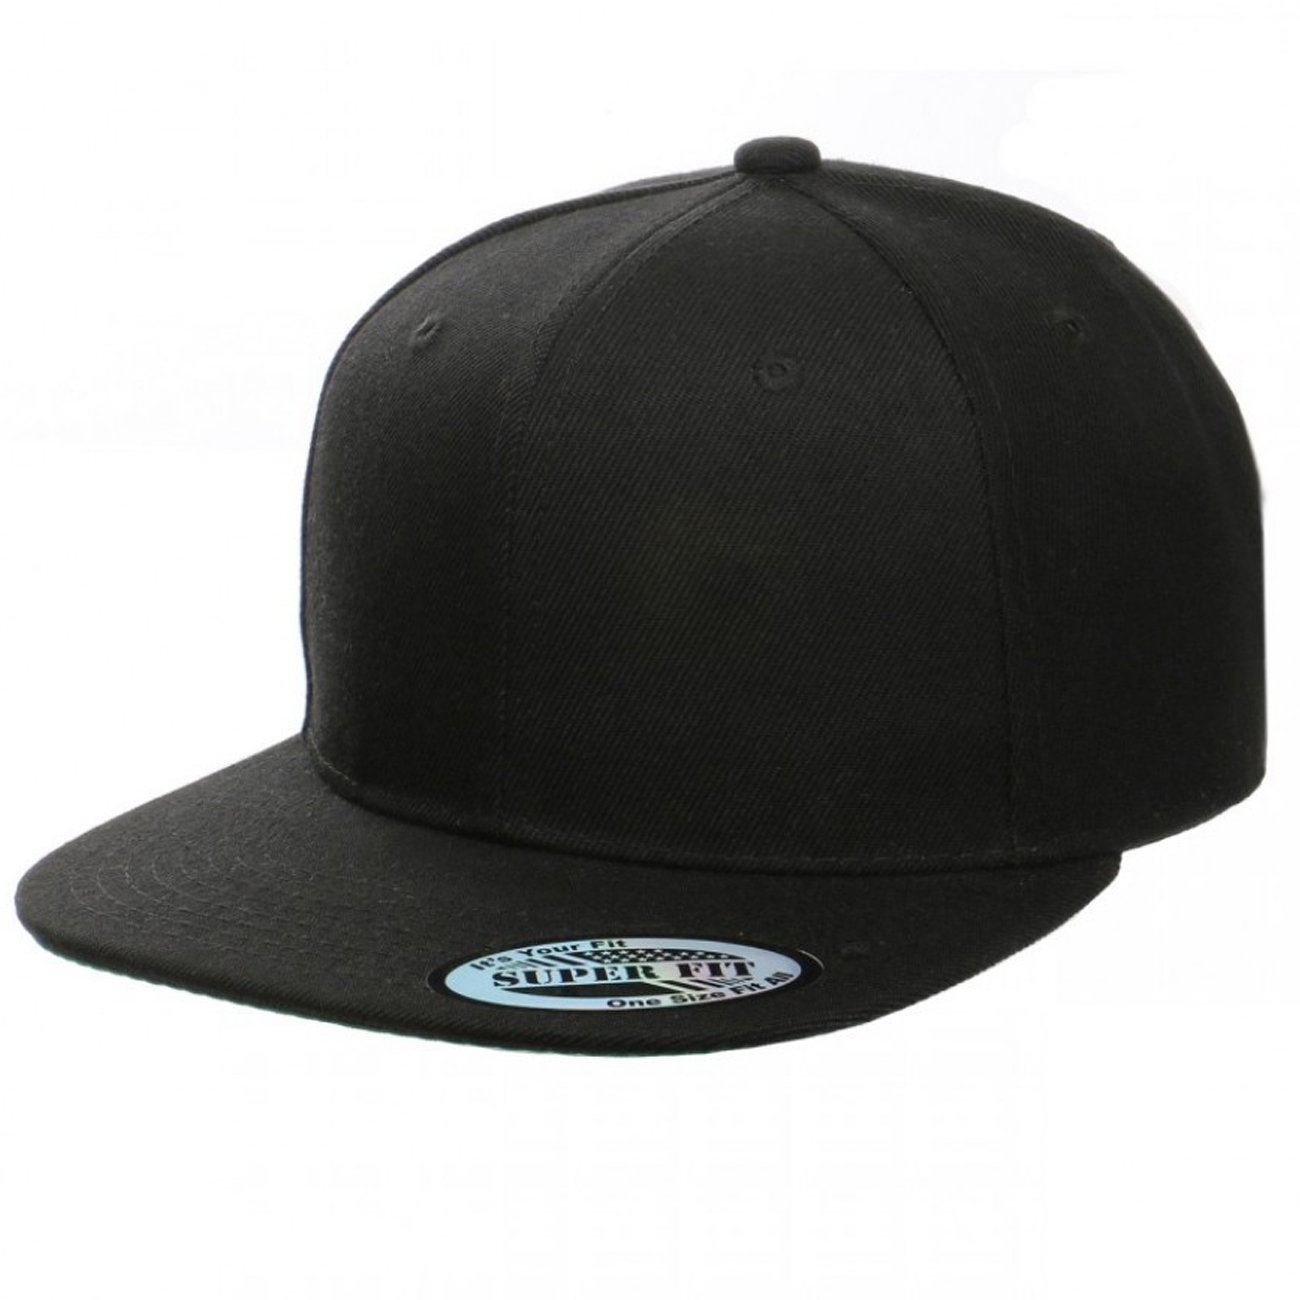 c6f375aba Blank Adjustable Flat Bill Plain Snapback Hats Caps